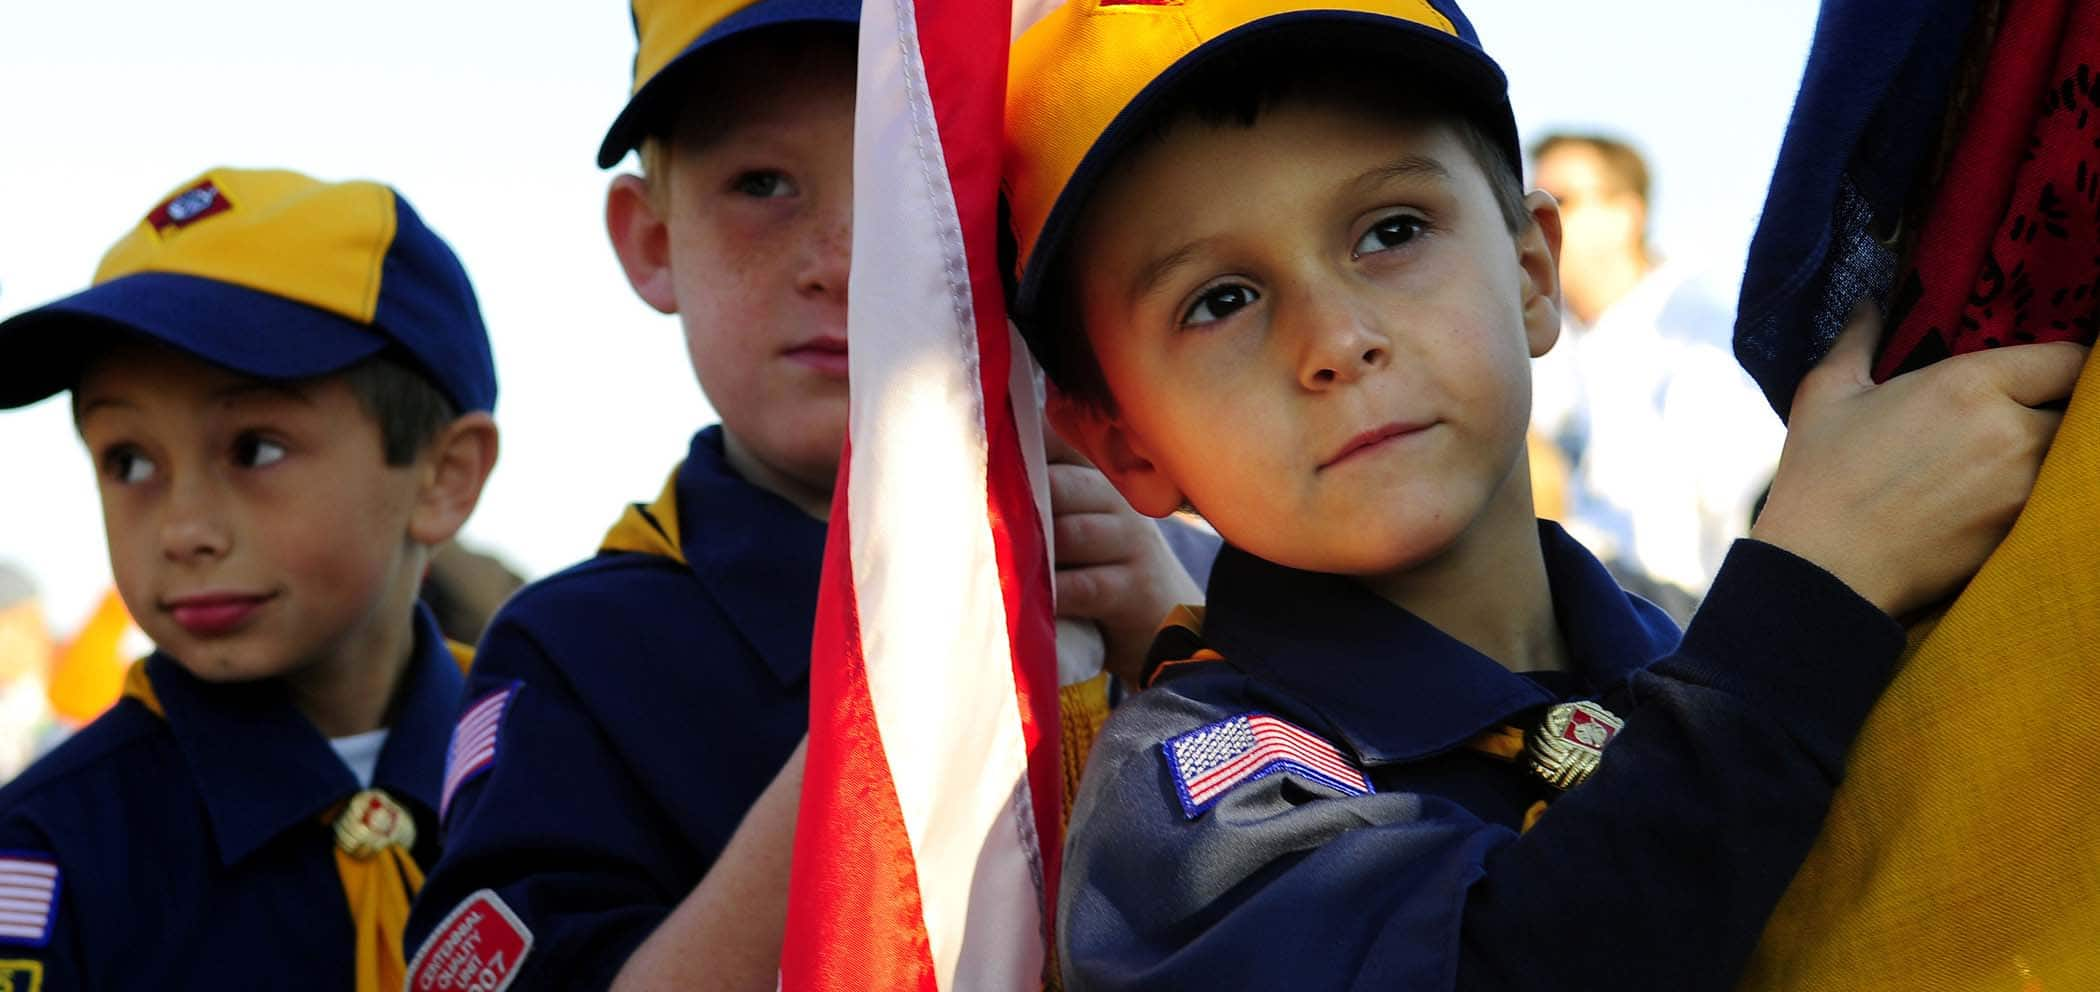 Cub Scout Activities are Great for Boys!